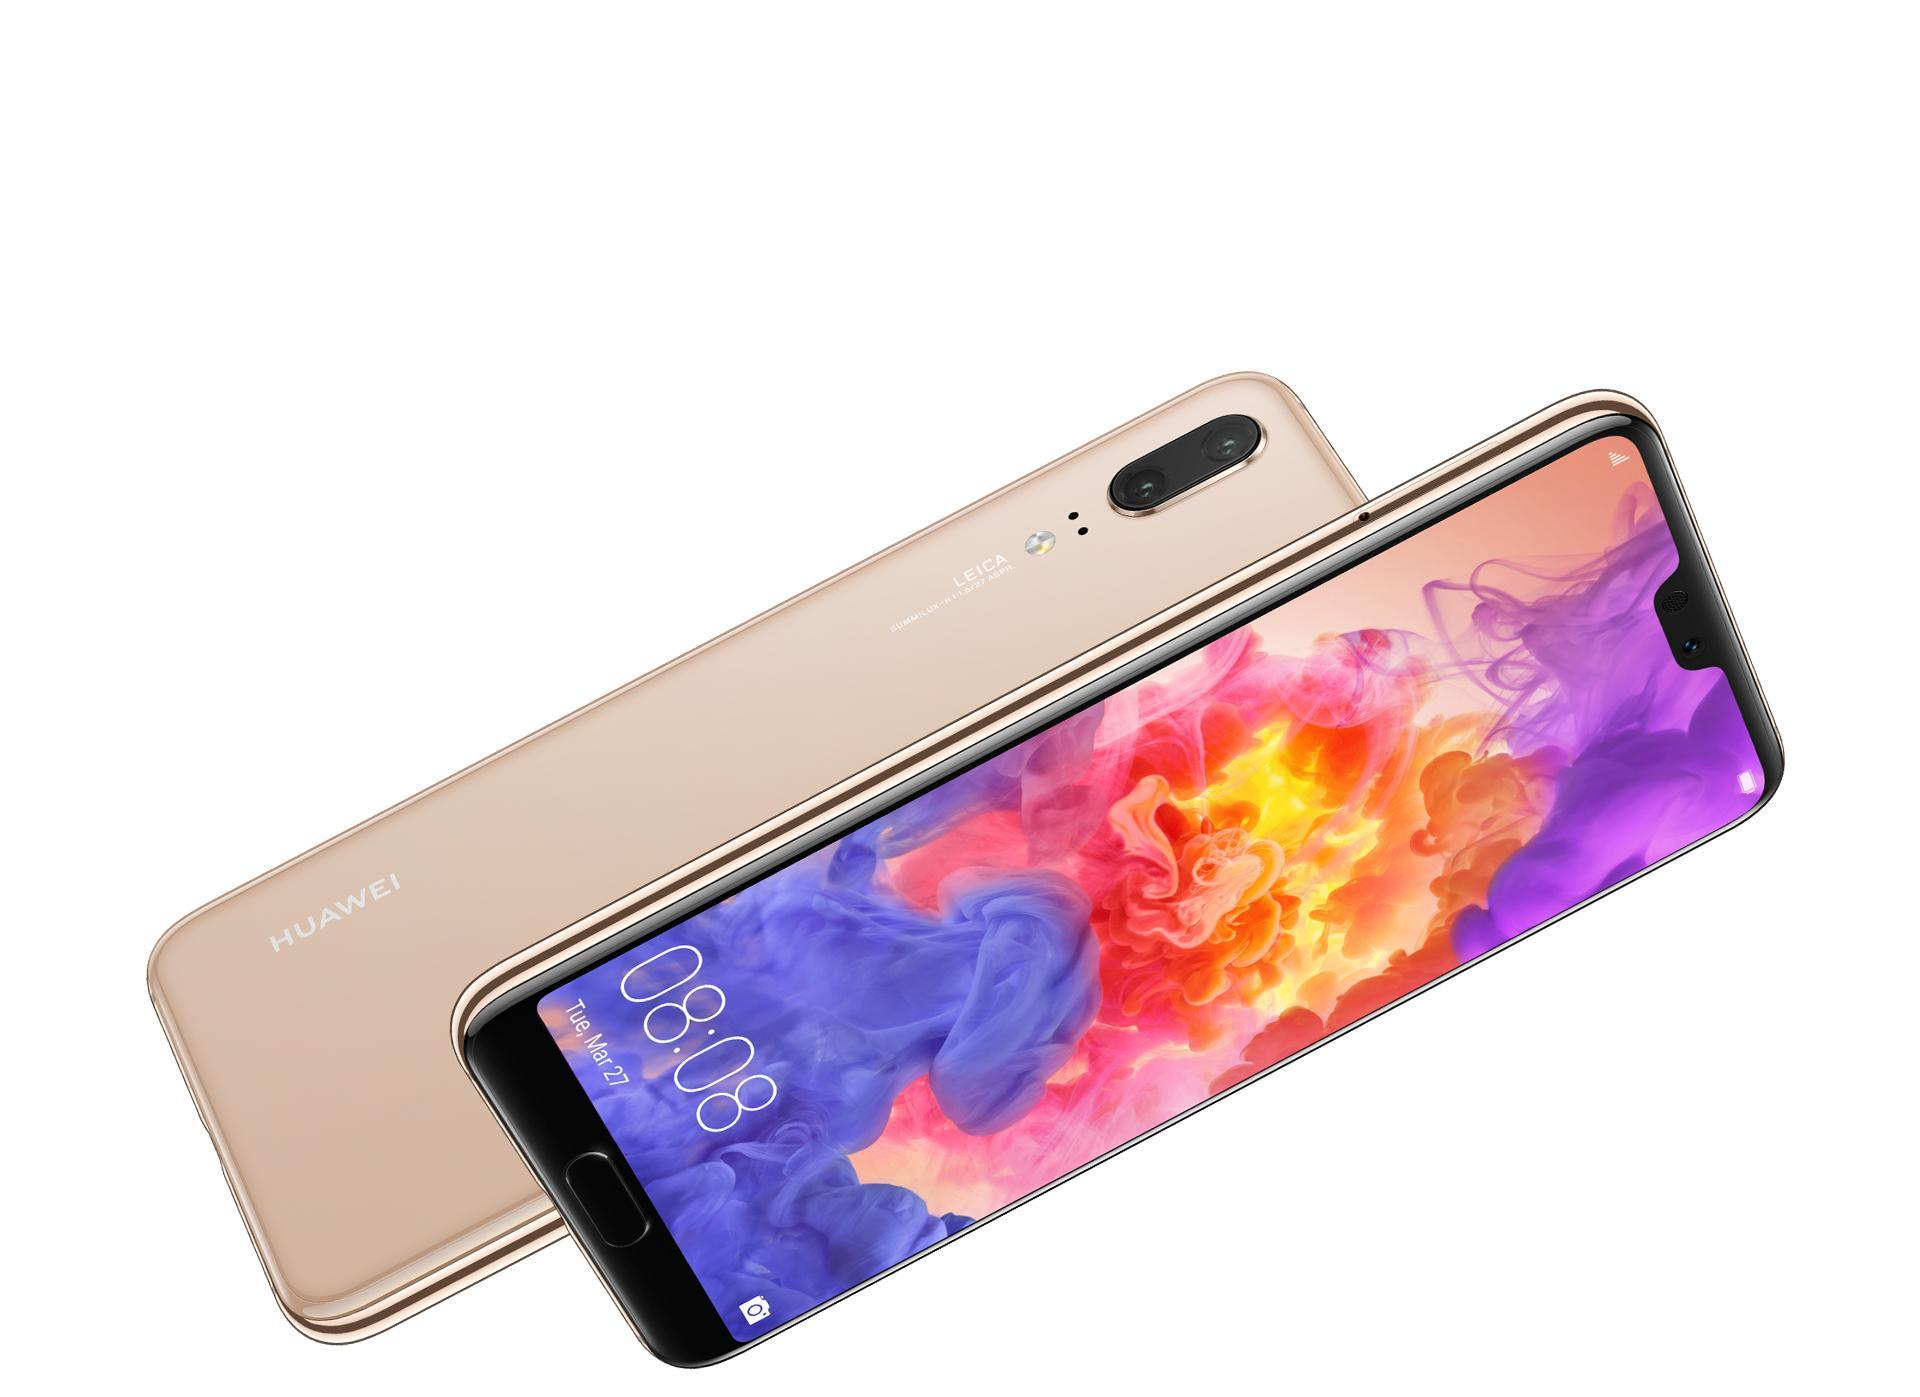 Huawei P20 in gold color